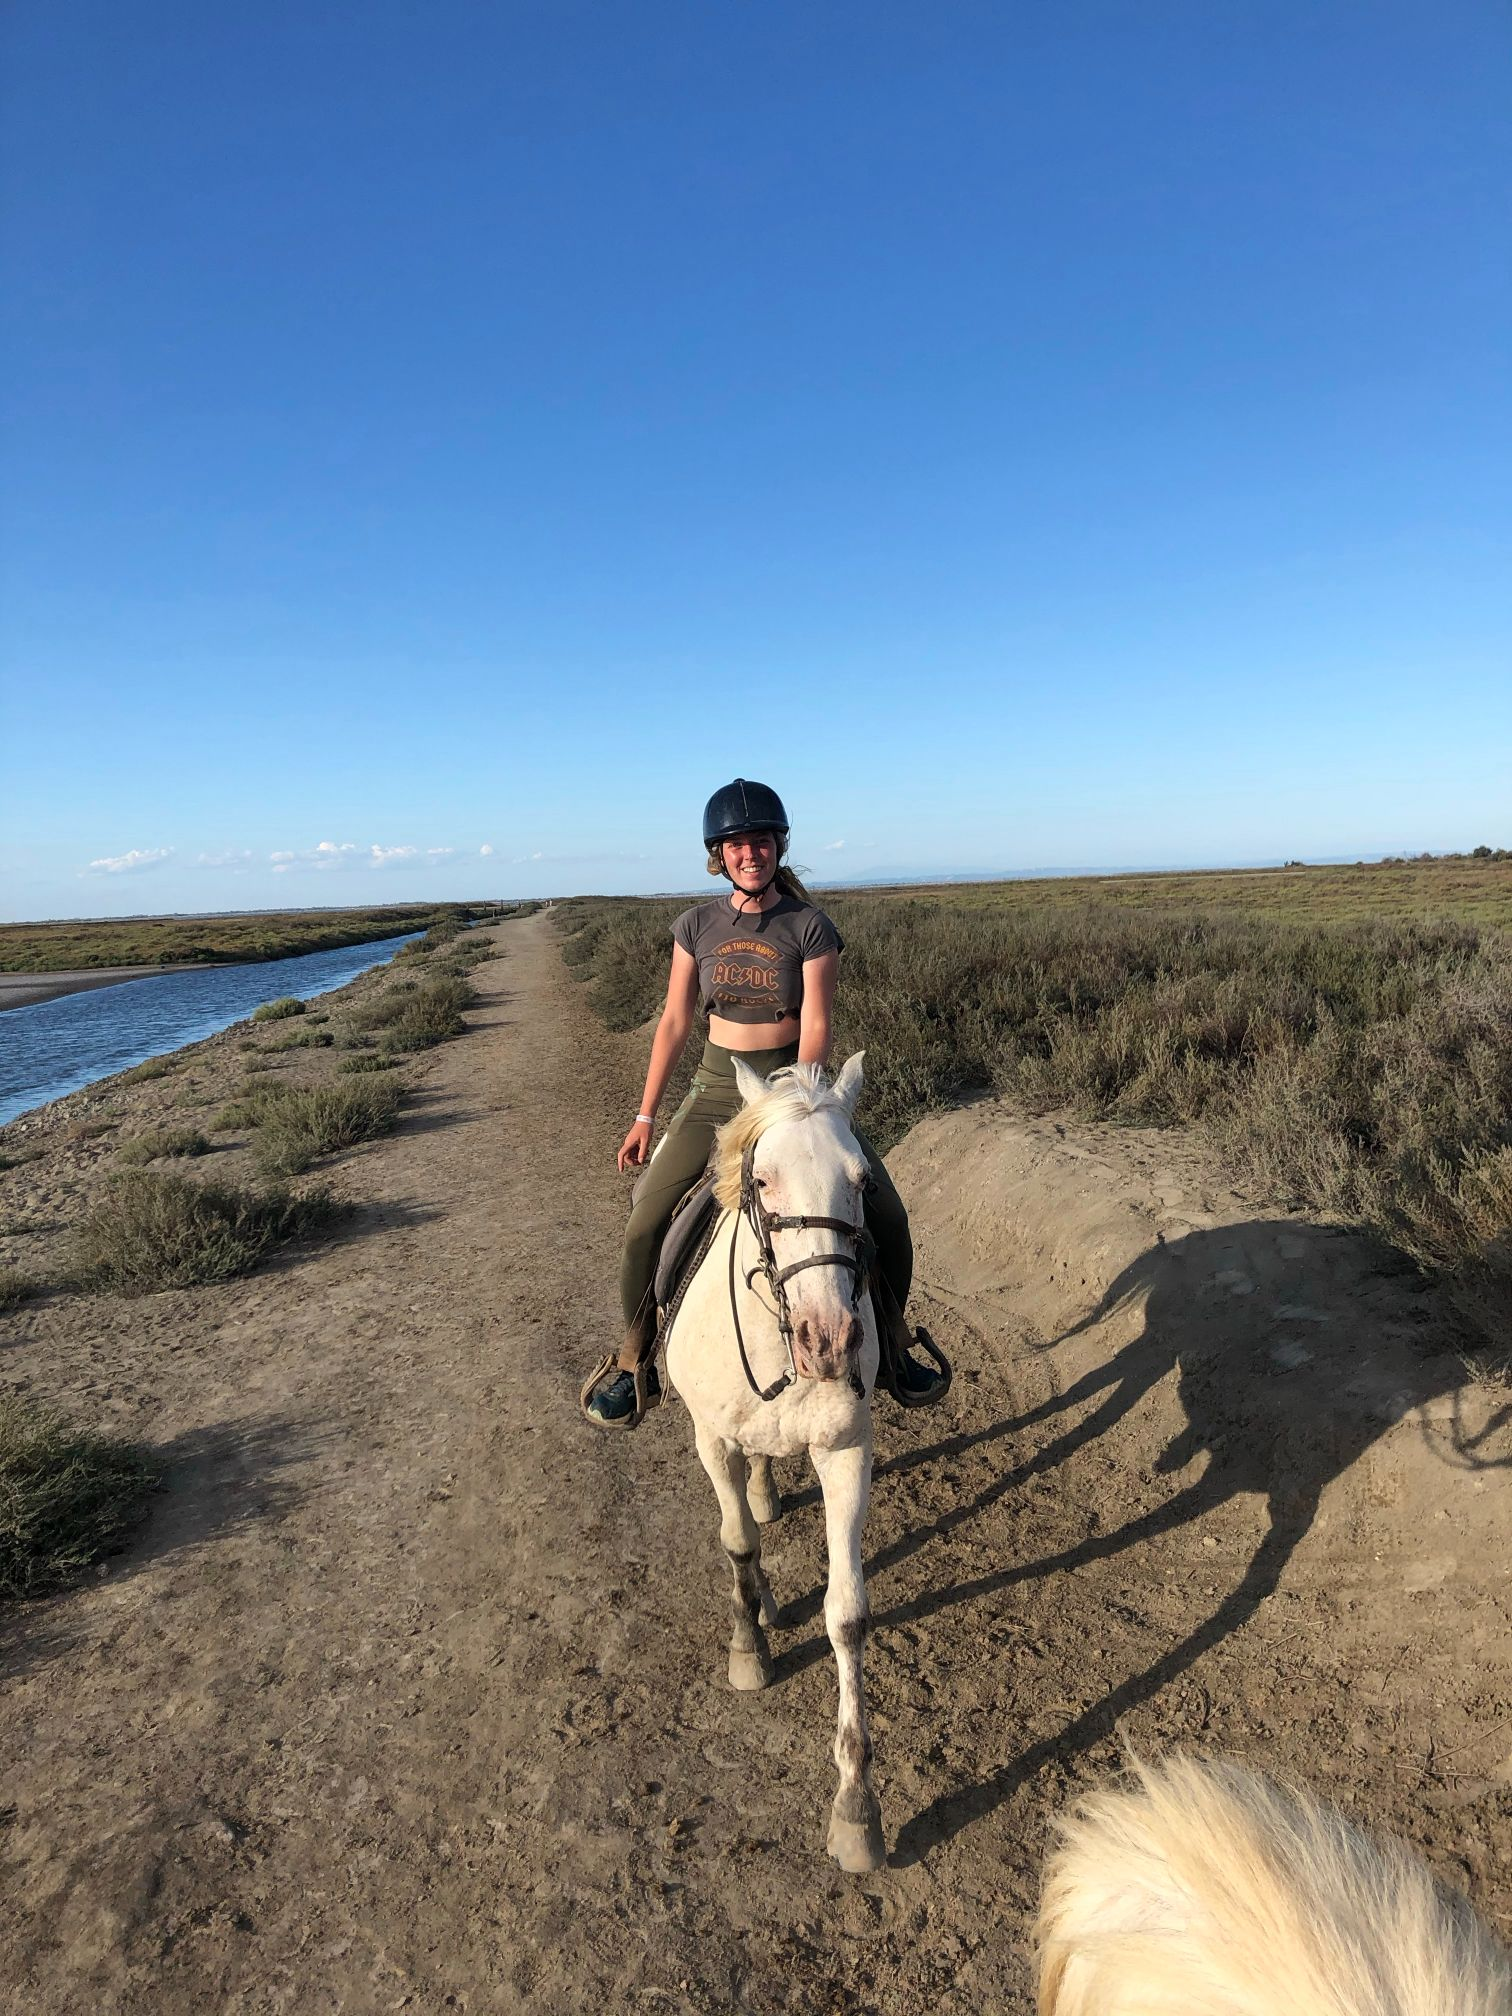 Trotting with a horse on a river bank in camargue france